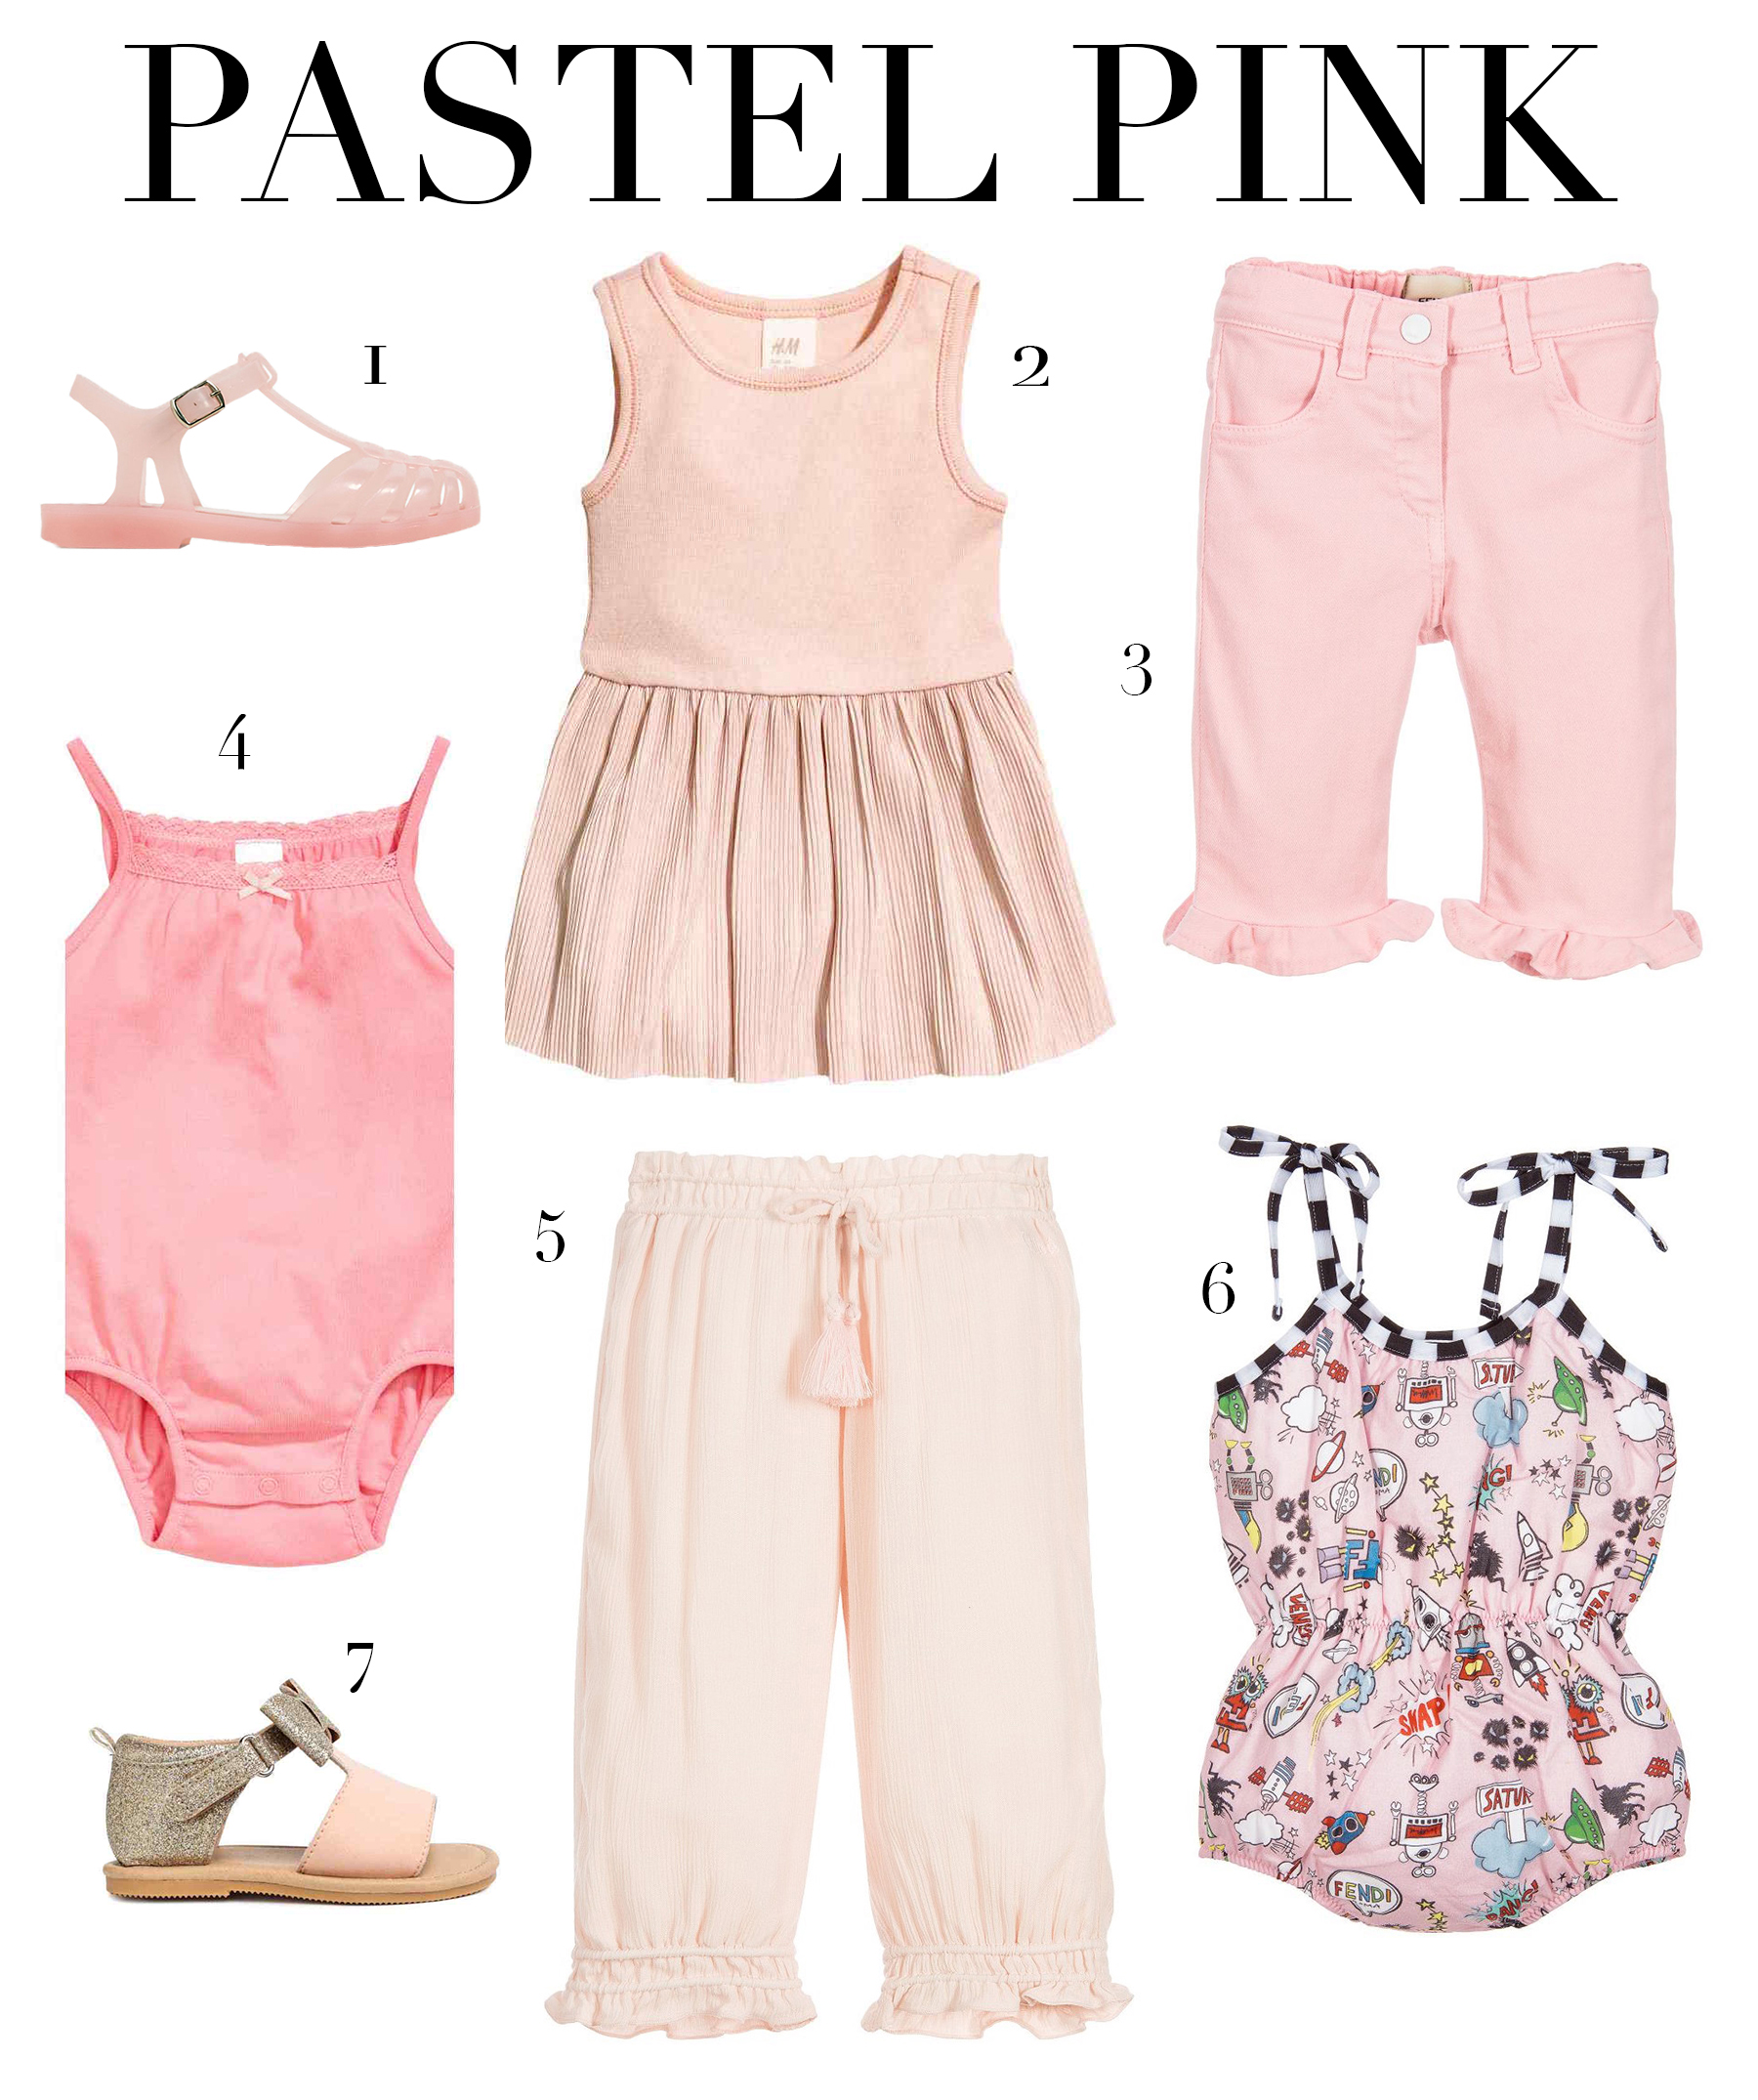 pastel-pink-baby-girls-outfits-summer-pret-a-pregnant